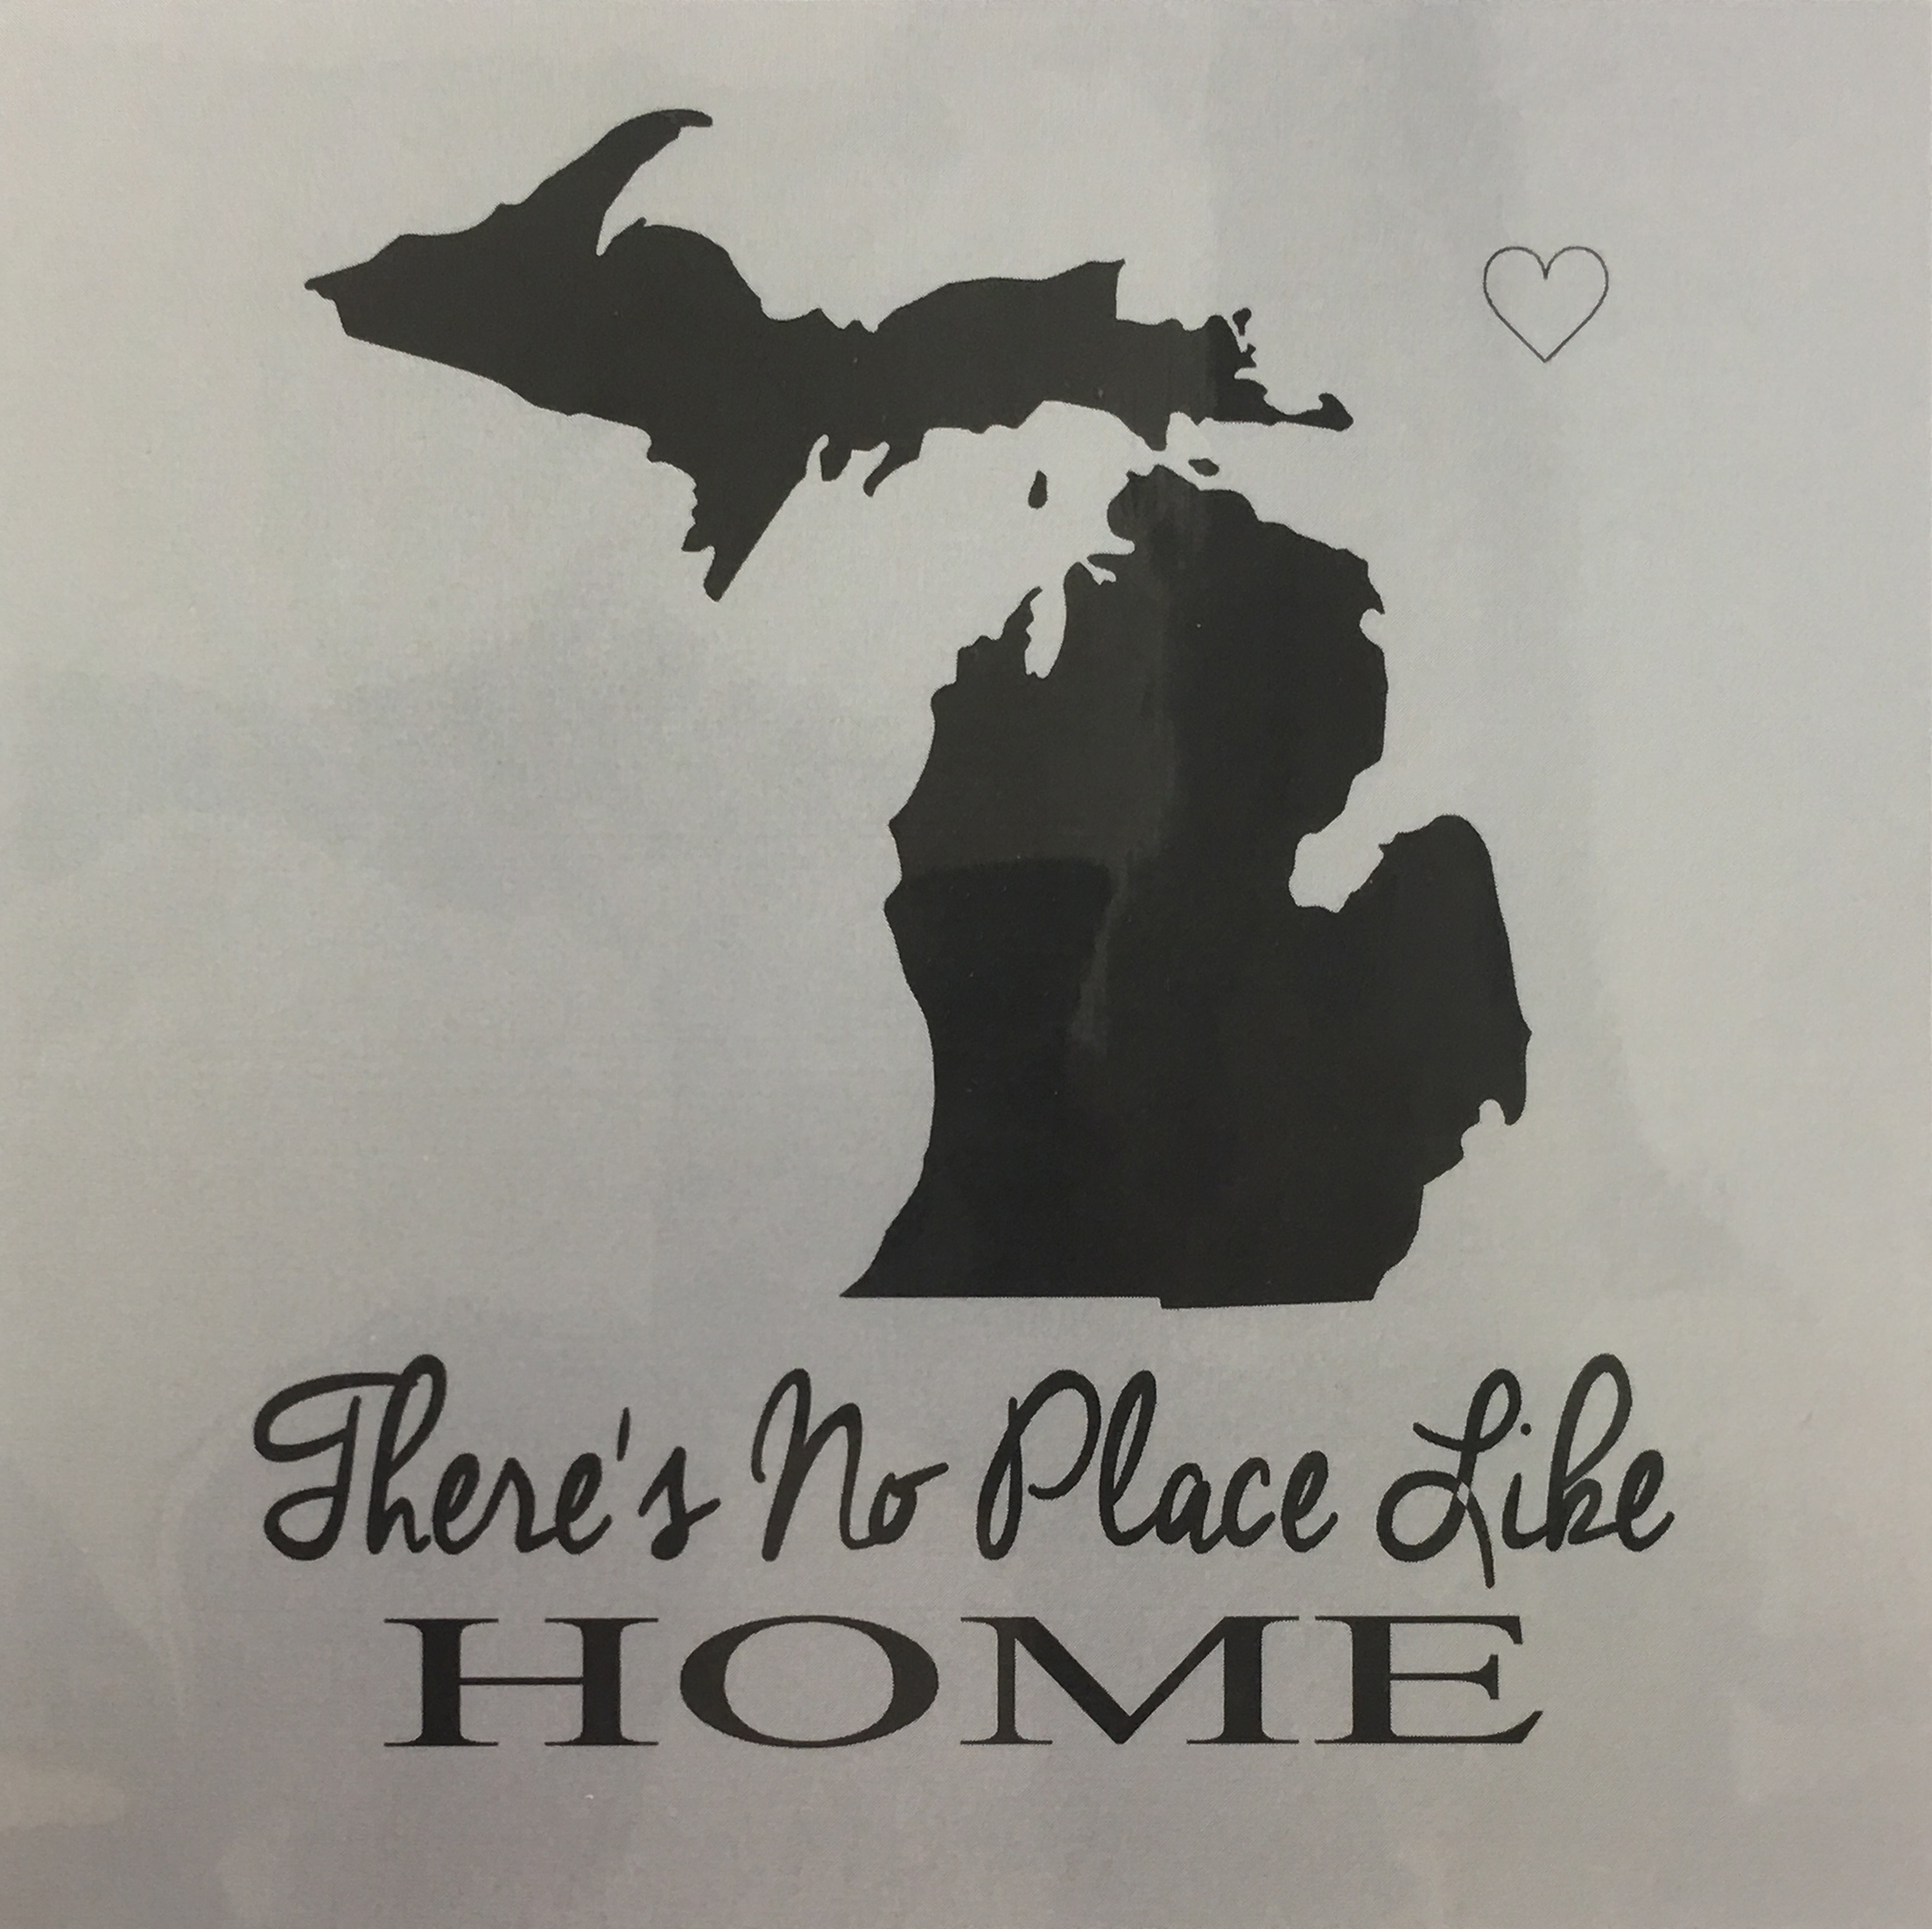 #61 There's No Place Like Home MI